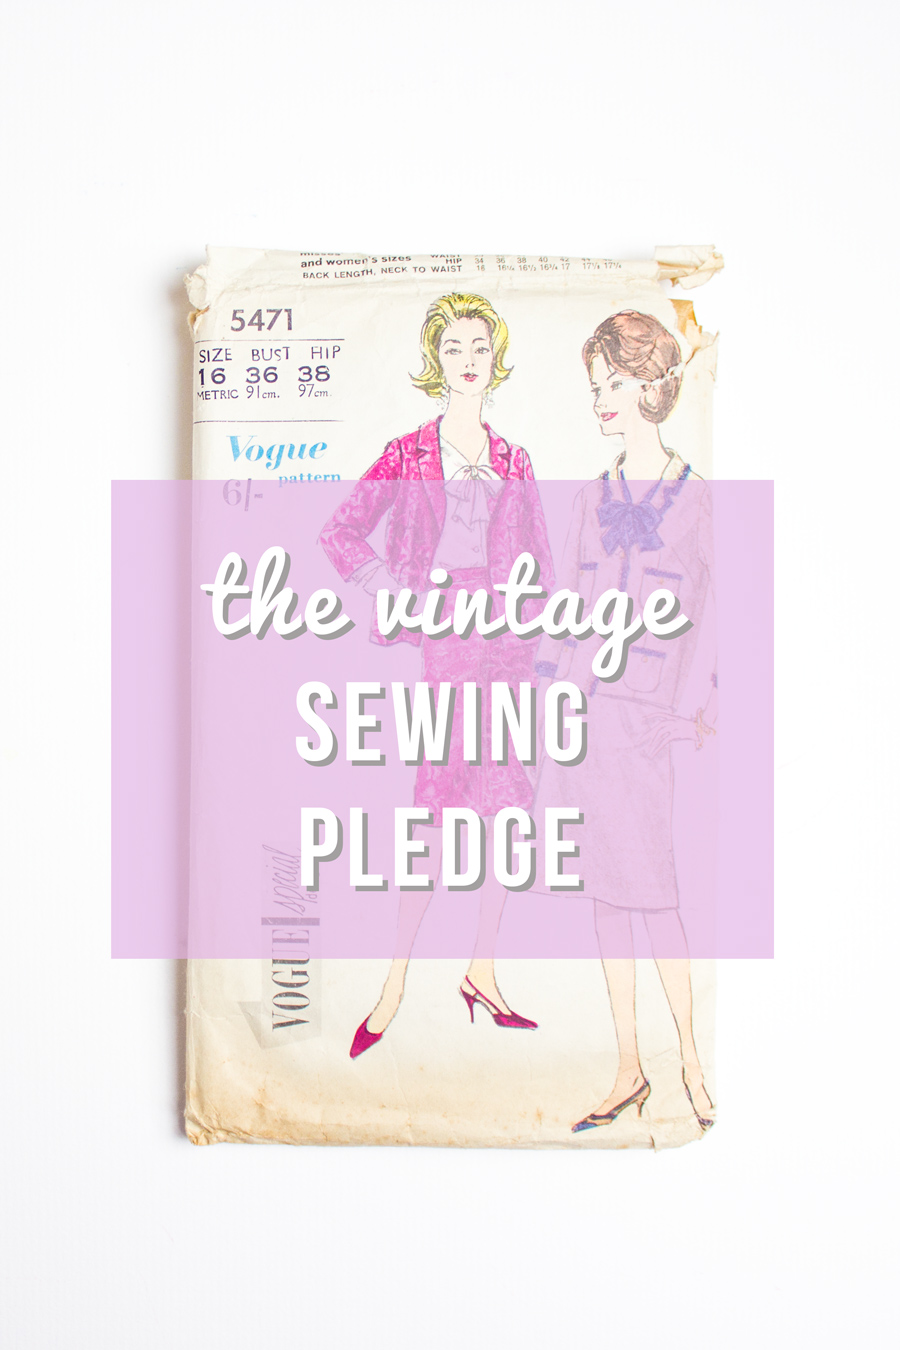 2015 vintage sewing pledge